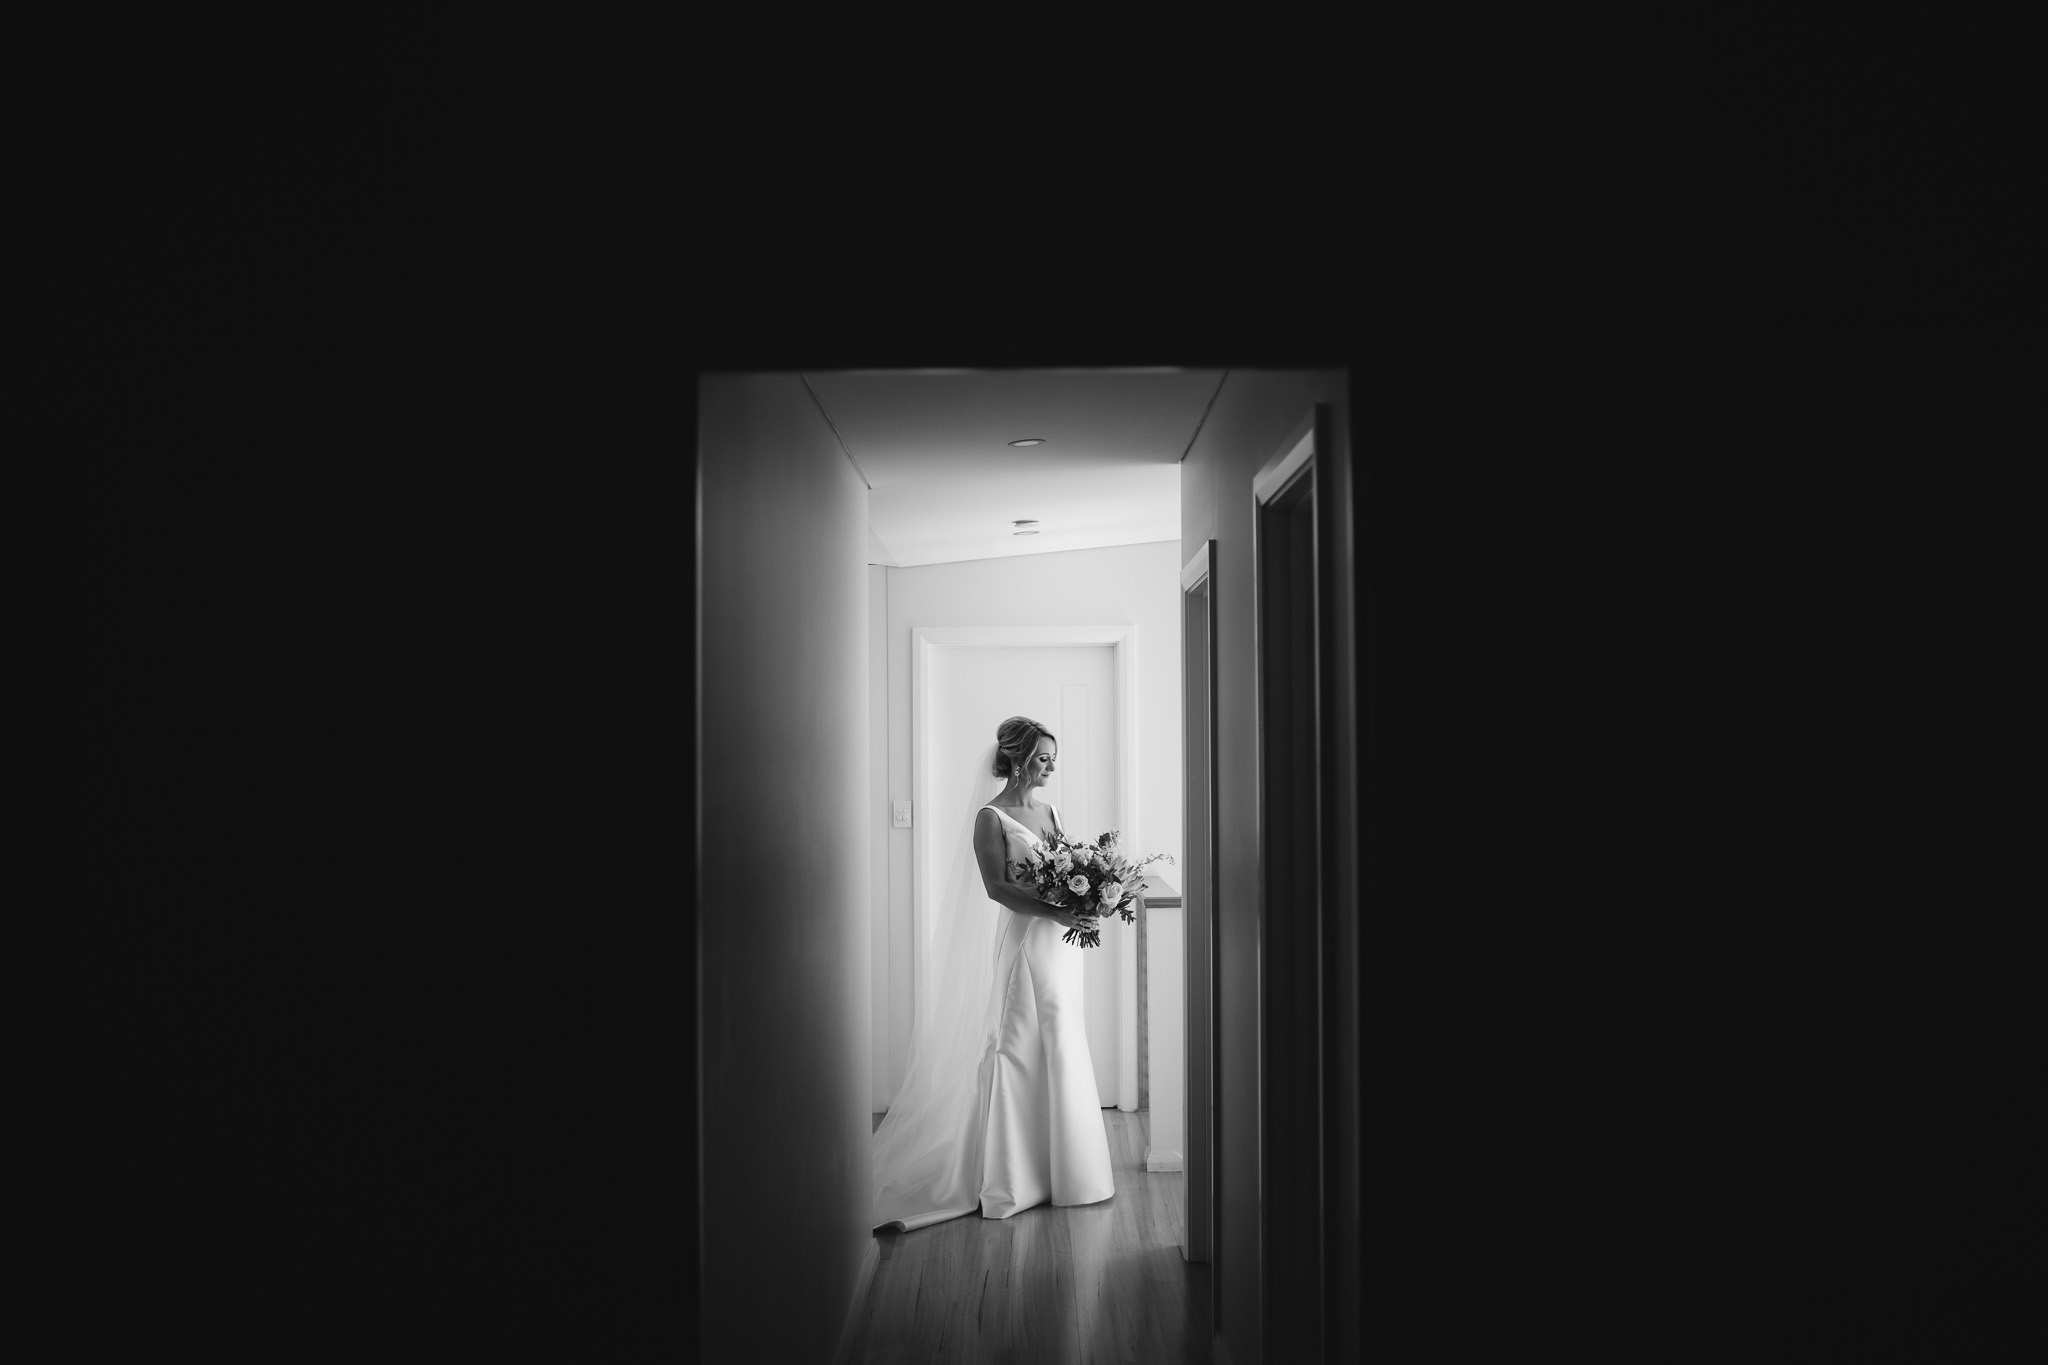 Black and white portrait of bride in hallway before her wedding ceremony